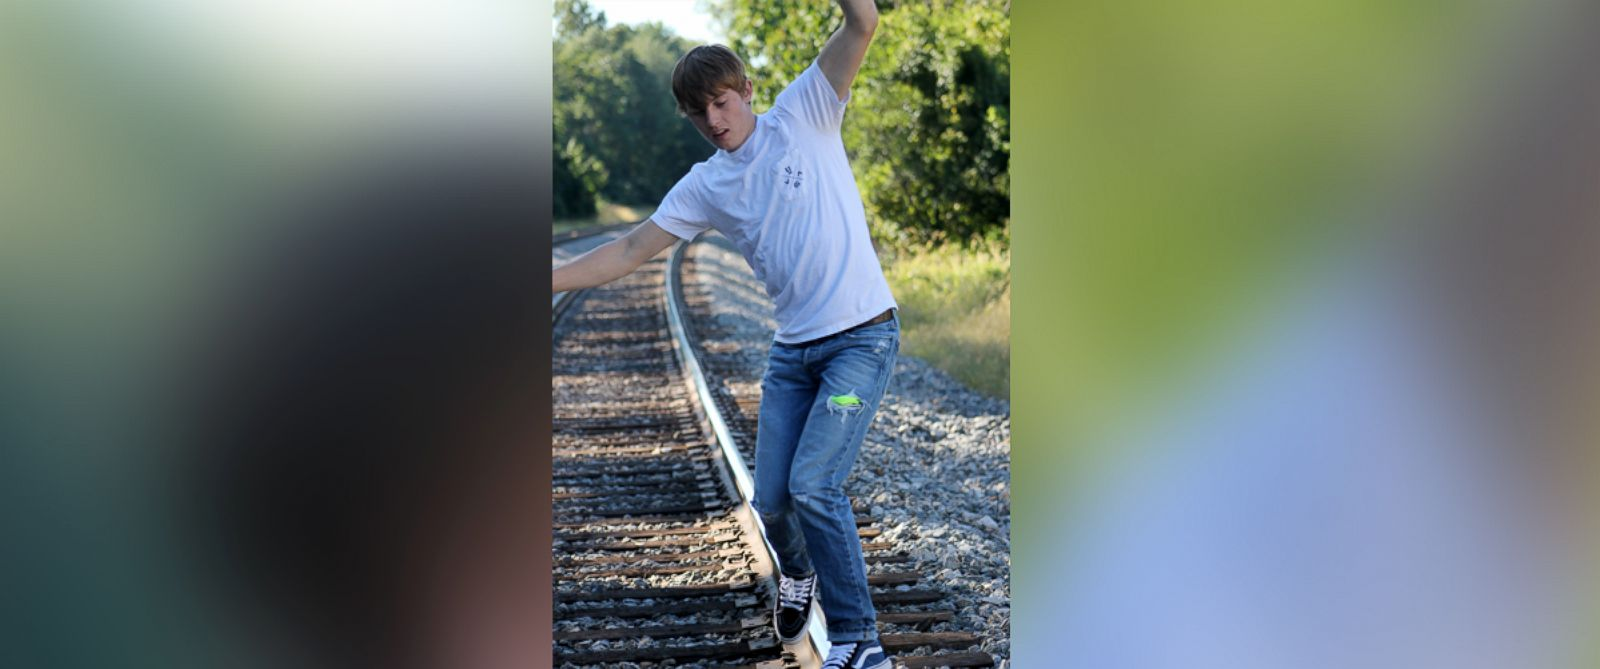 PHOTO: John DeReggi, 16, was struck and killed by an Amtrak train moments after this photo was taken on Sept. 14, 2015.